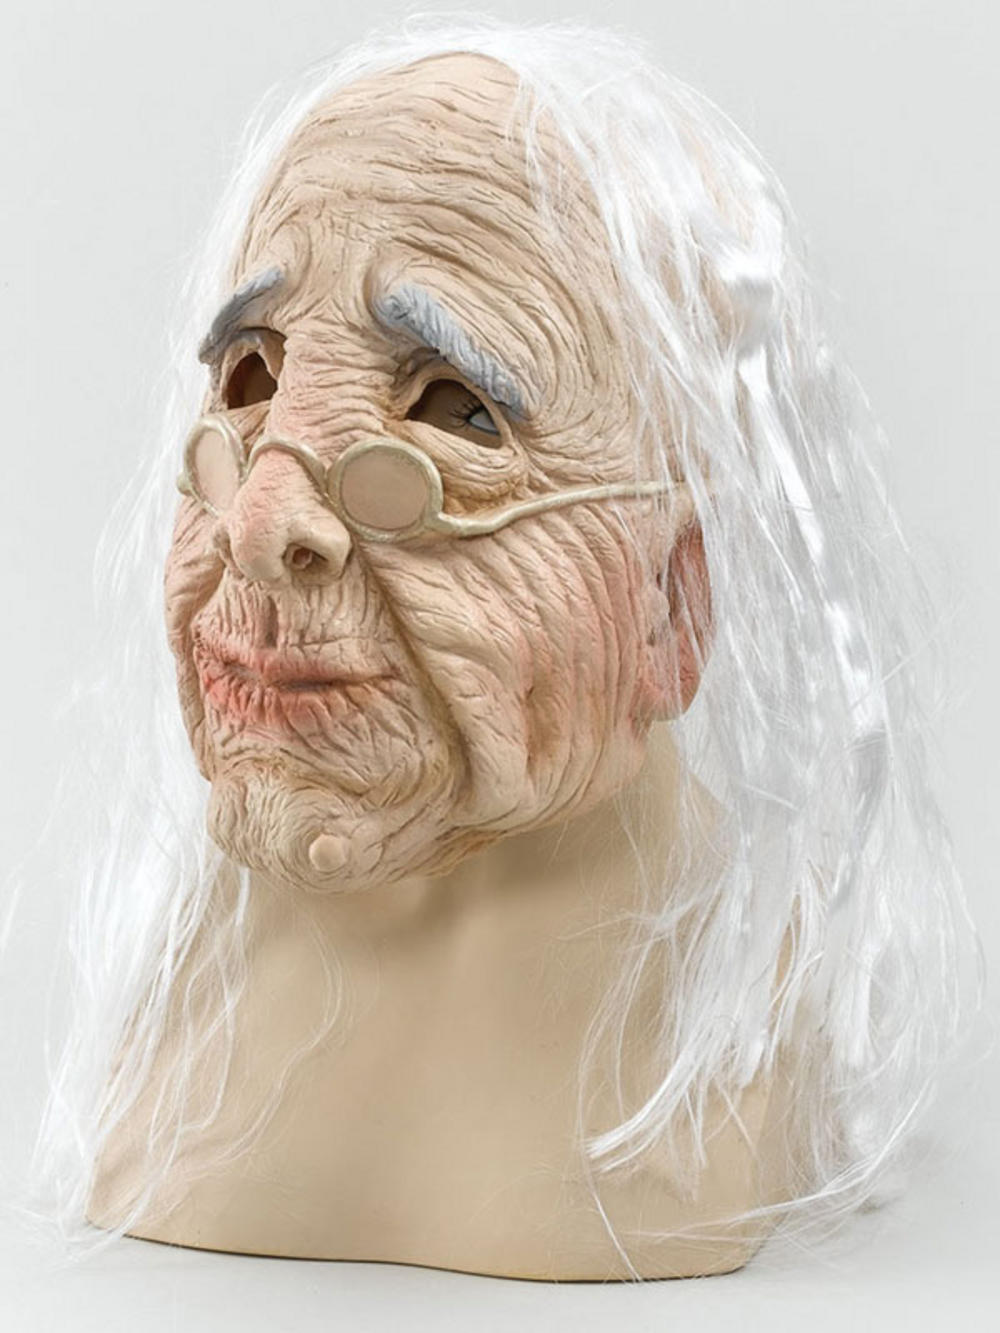 Adult Old Woman Overhead Rubber Adult Mask & White Hair Fancy ...